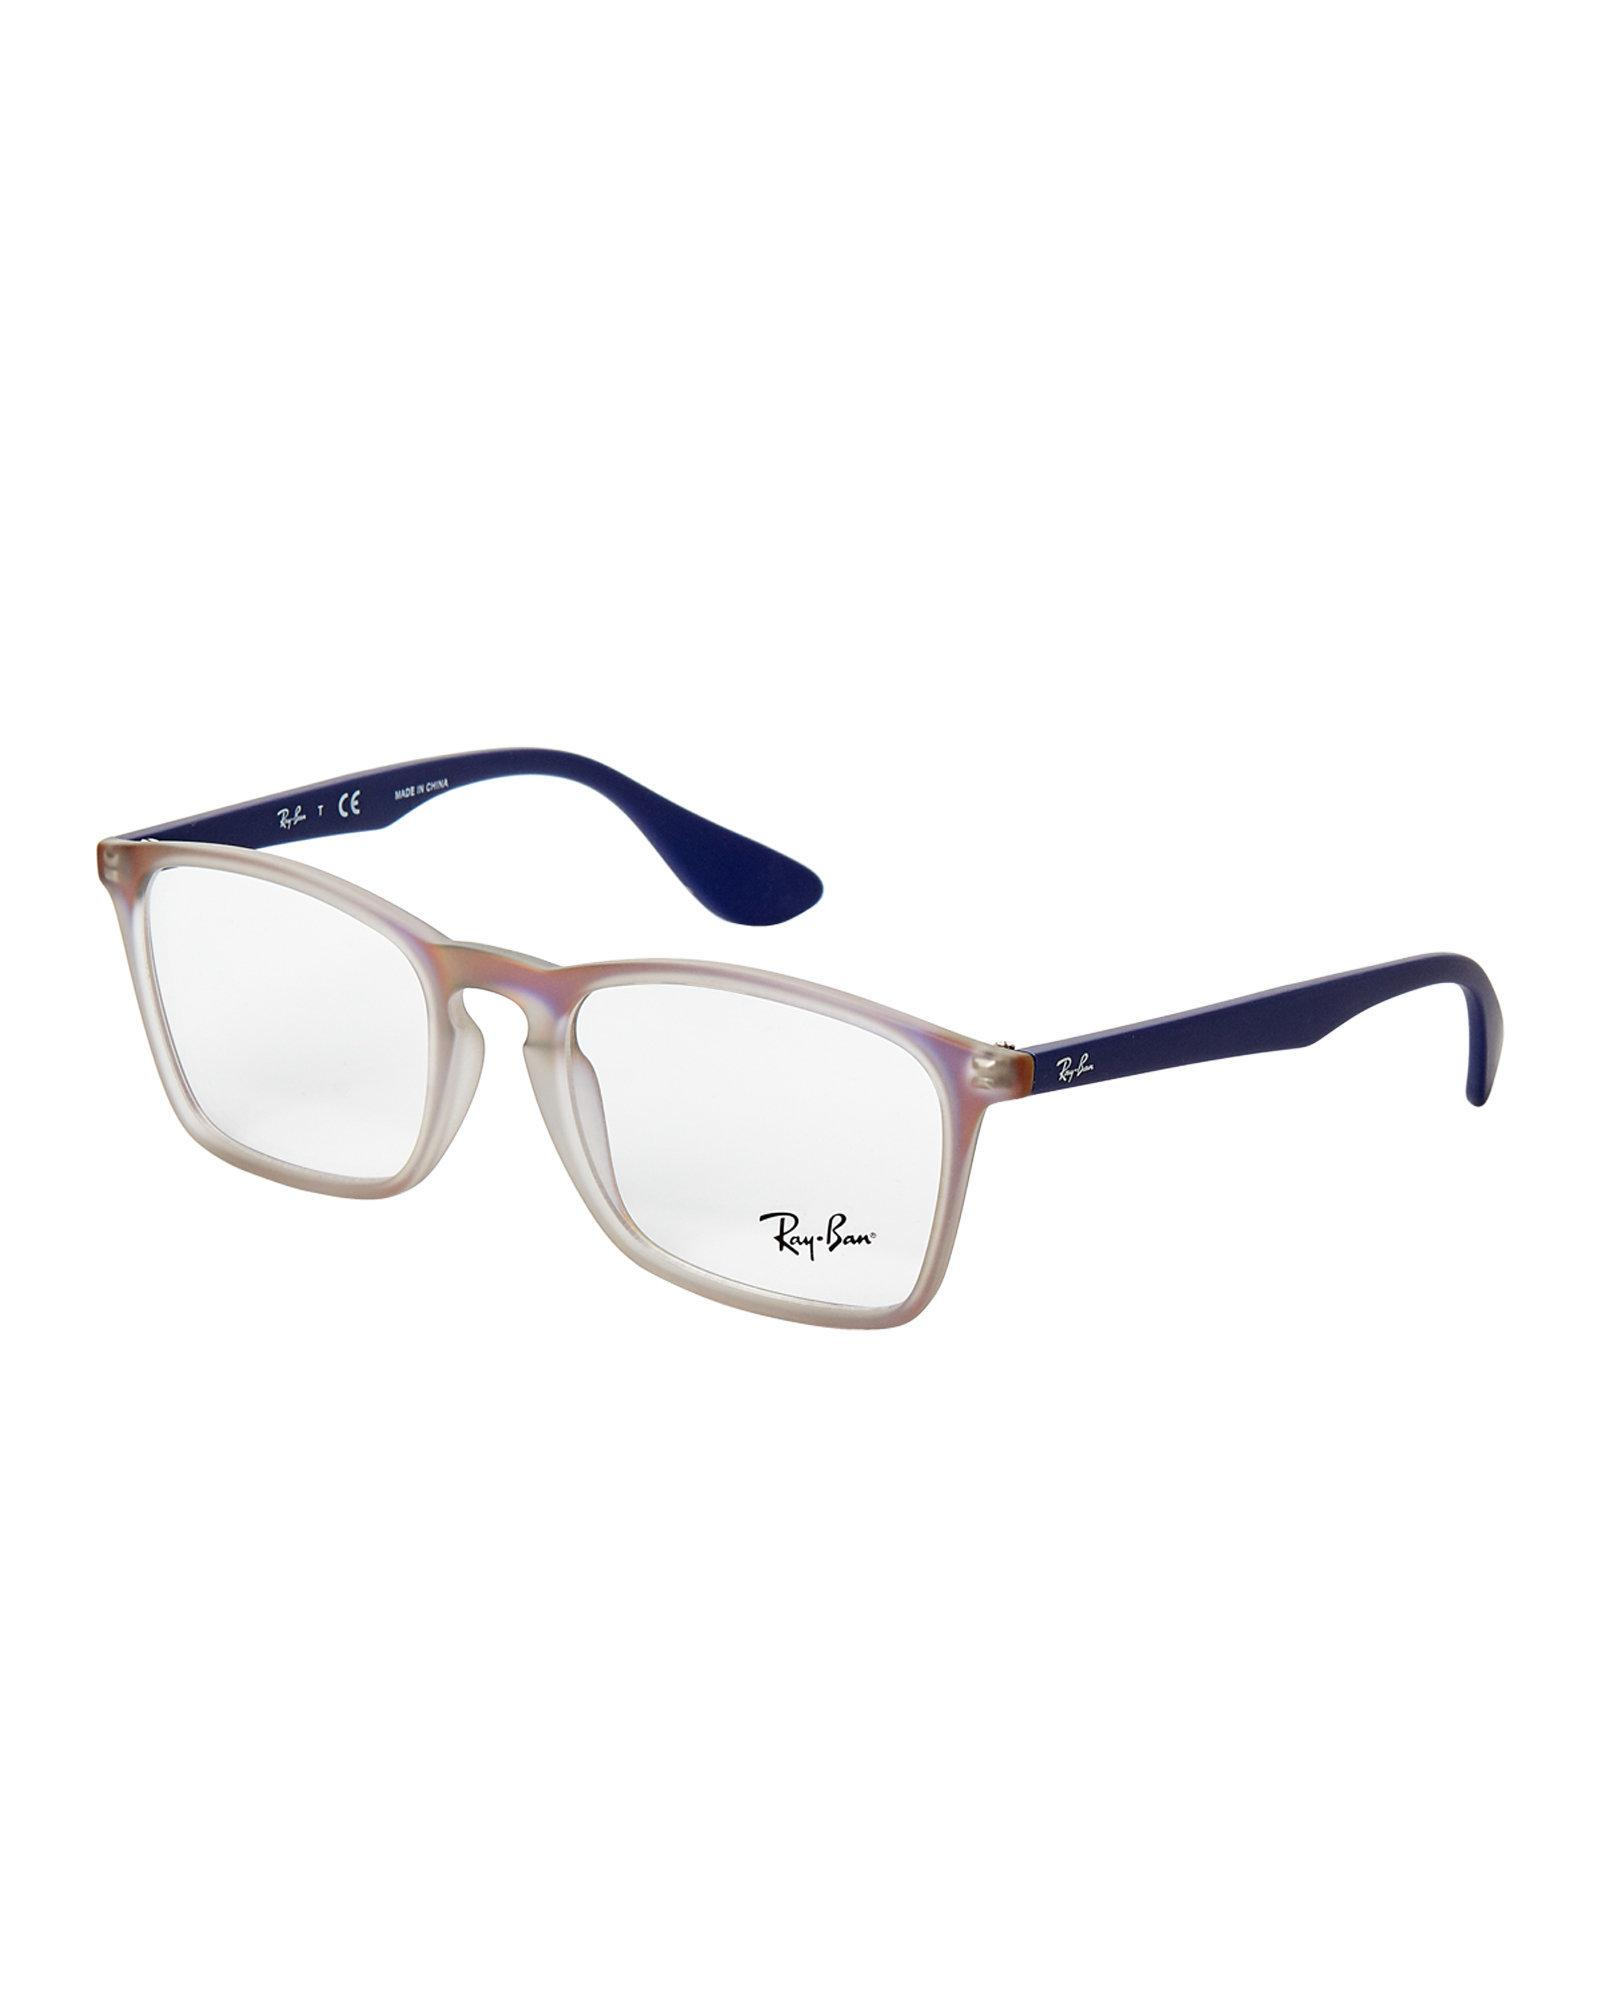 a46507fe61 Lyst - Ray-Ban Rb7045 Two-tone Square Frames in Blue for Men